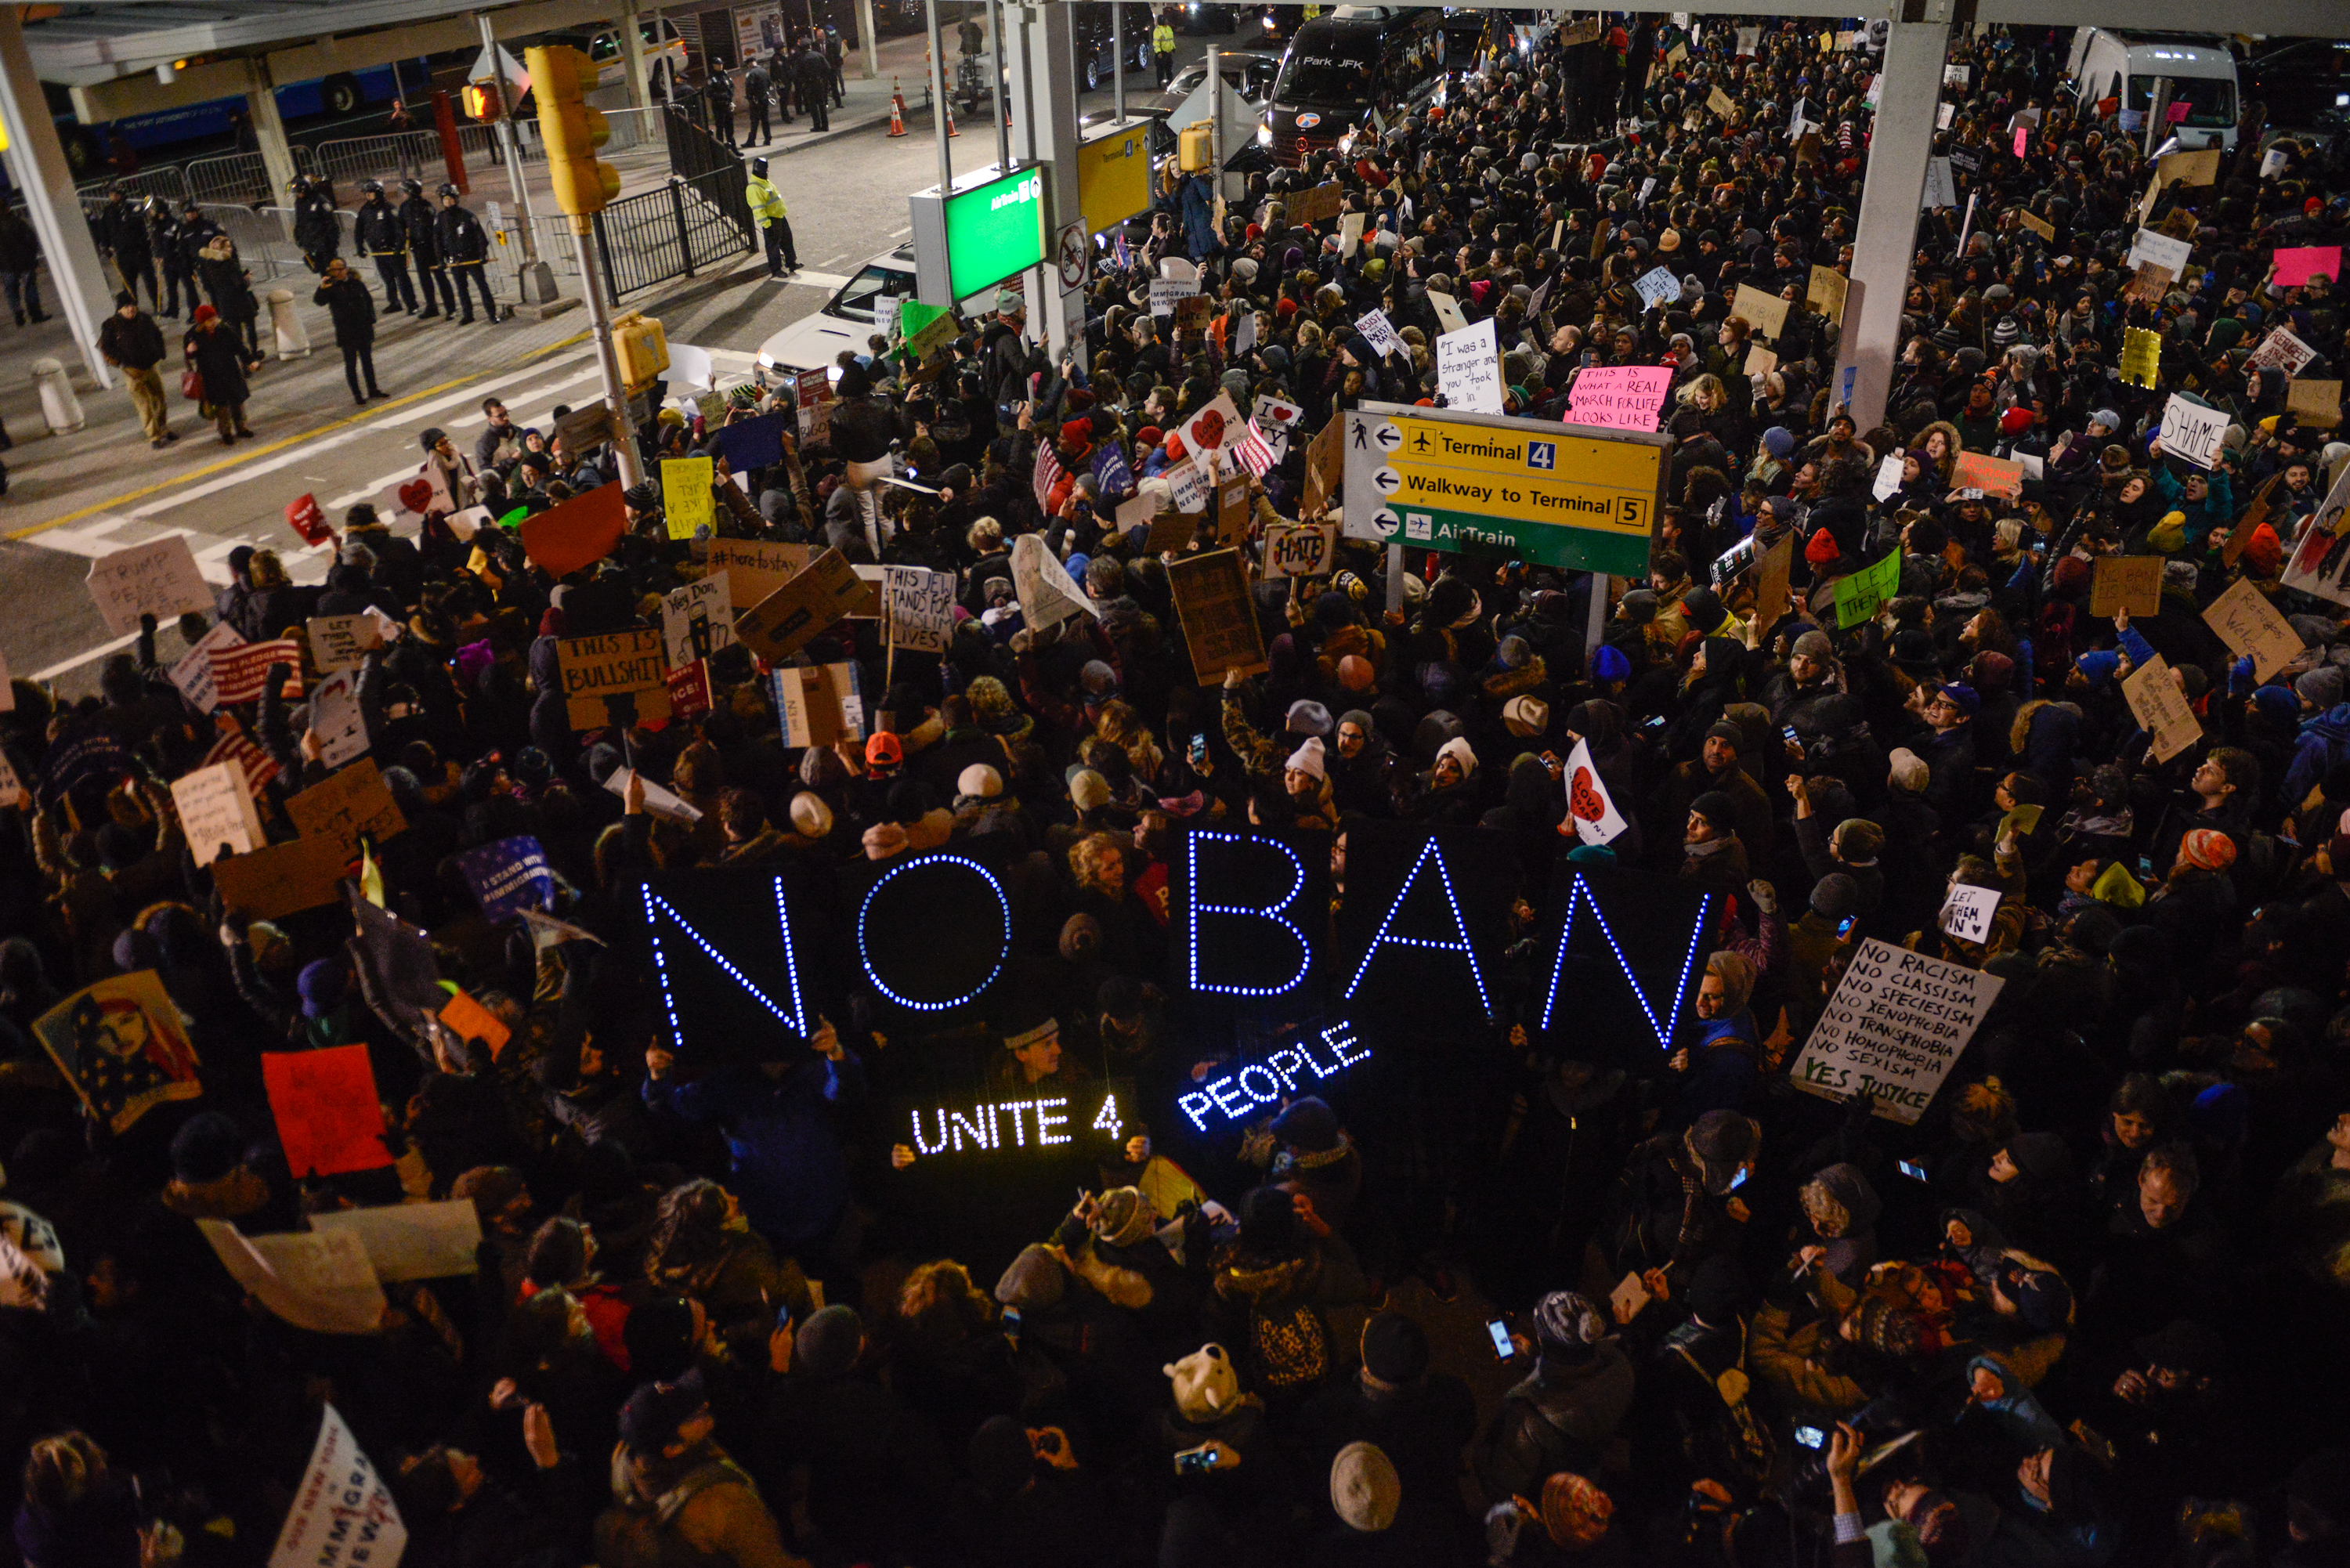 Protesters rally  during a demonstration against the Muslim immigration ban at JFK International Airport on Jan. 28, 2017, in New York City